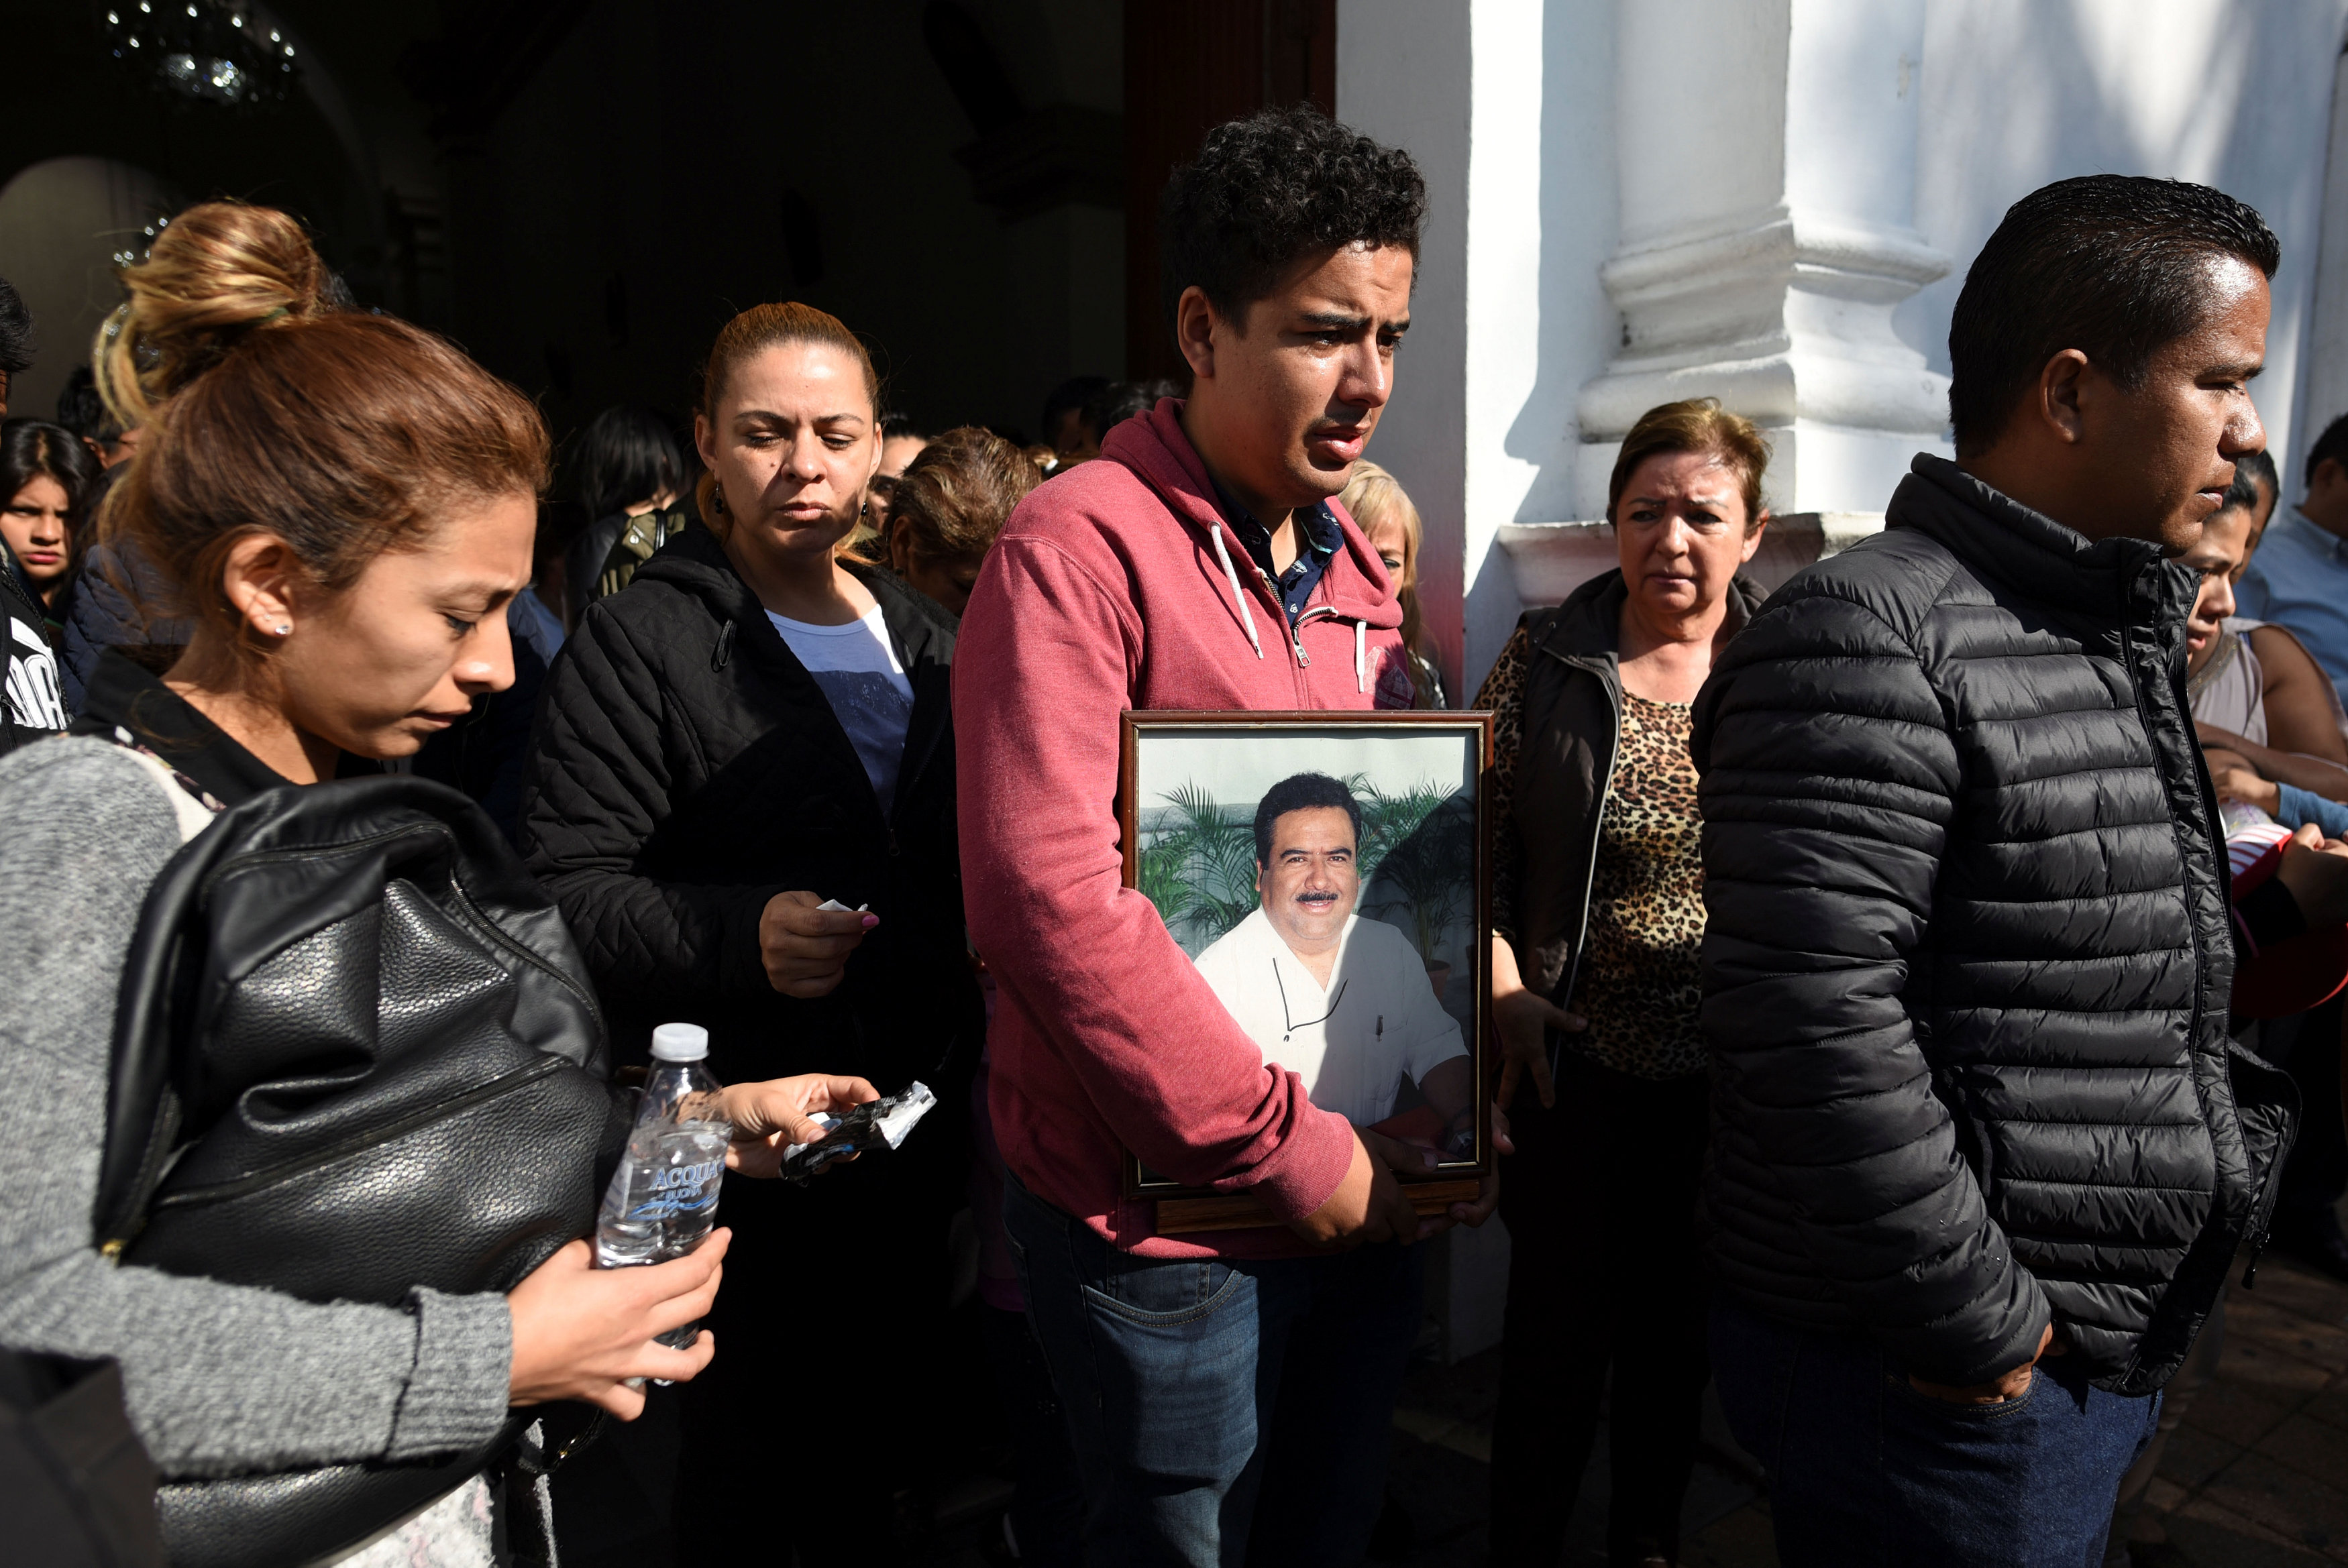 Relatives and friends of slain journalist Ricardo Monlui leave a church after his funeral mass in Cordoba, in the Mexican state of Veracruz, Mexico on March 20, 2017. (REUTERS/Yahir Ceballos)